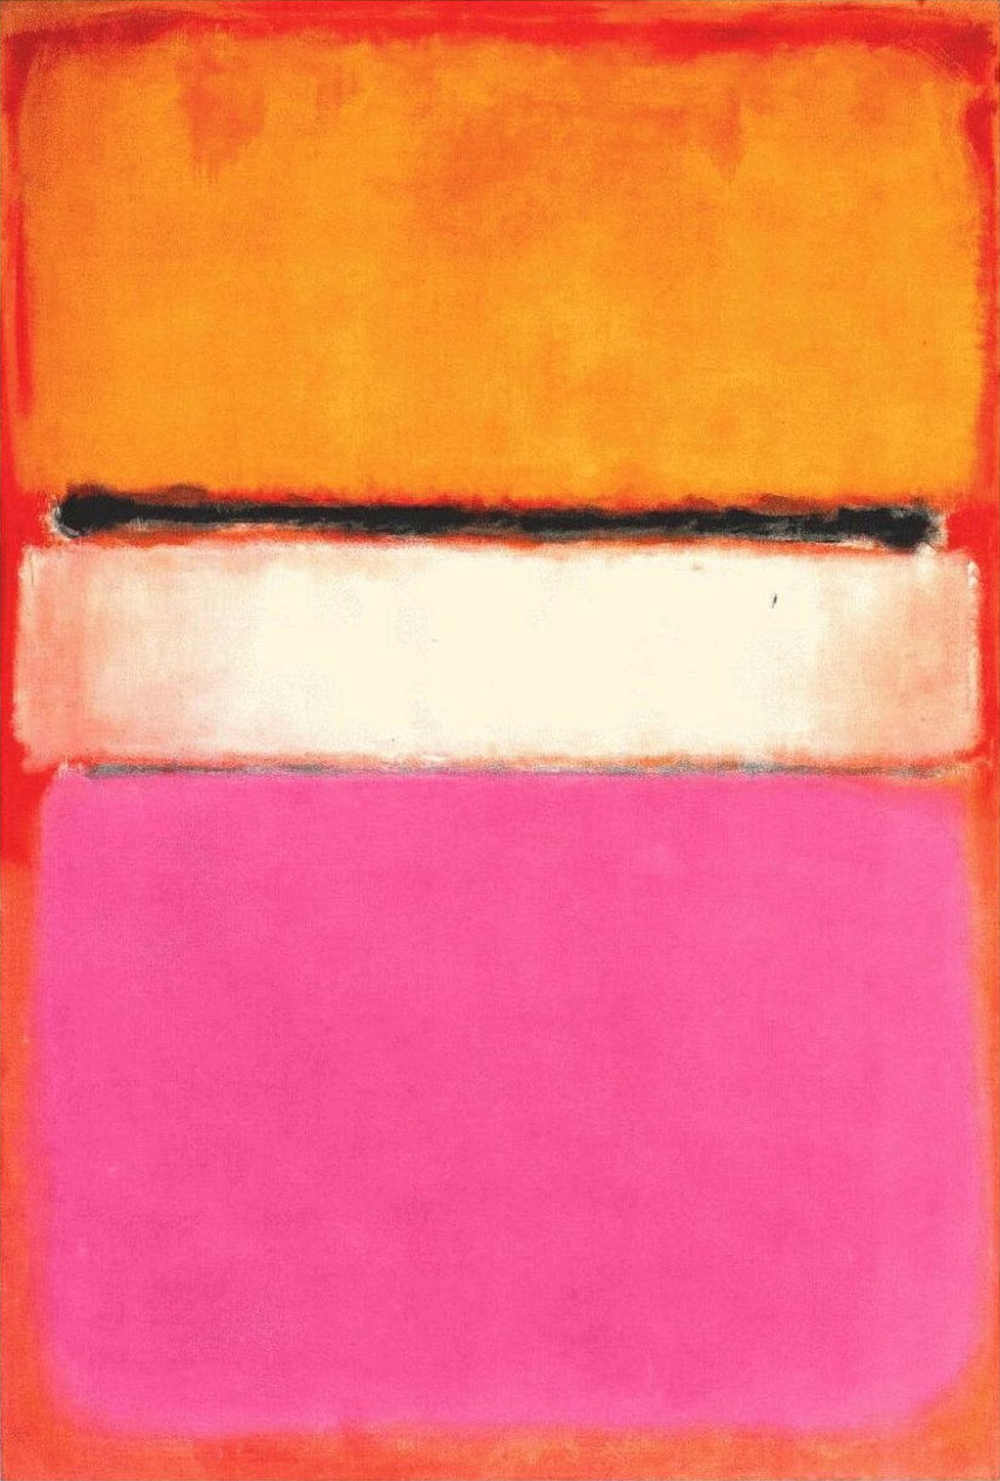 White Center . Mark Rothko, 1950.